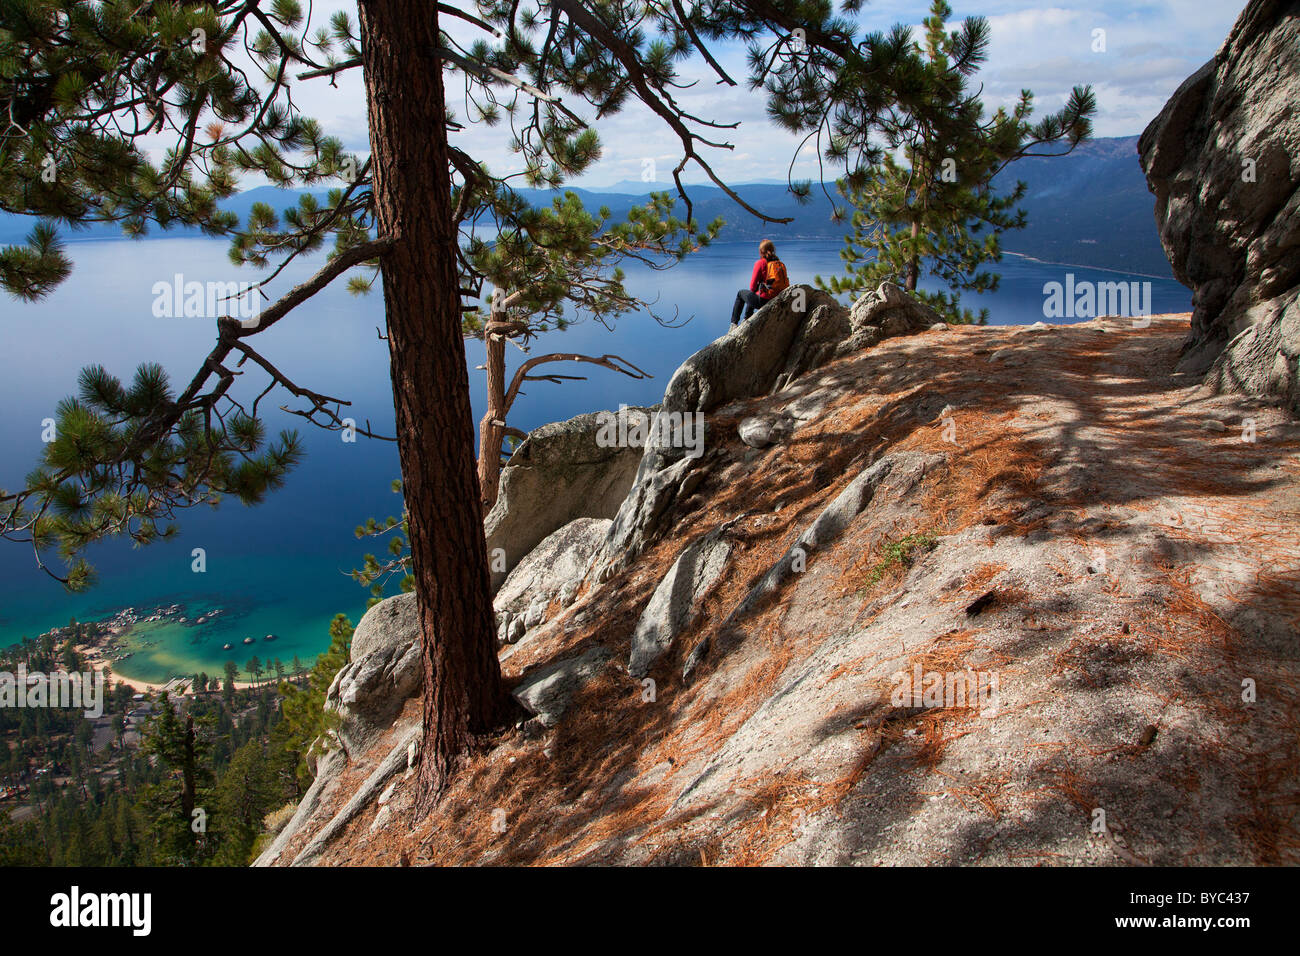 A hiker enjoys the view along the Flume Trail, Lake Tahoe, NV (model released) - Stock Image